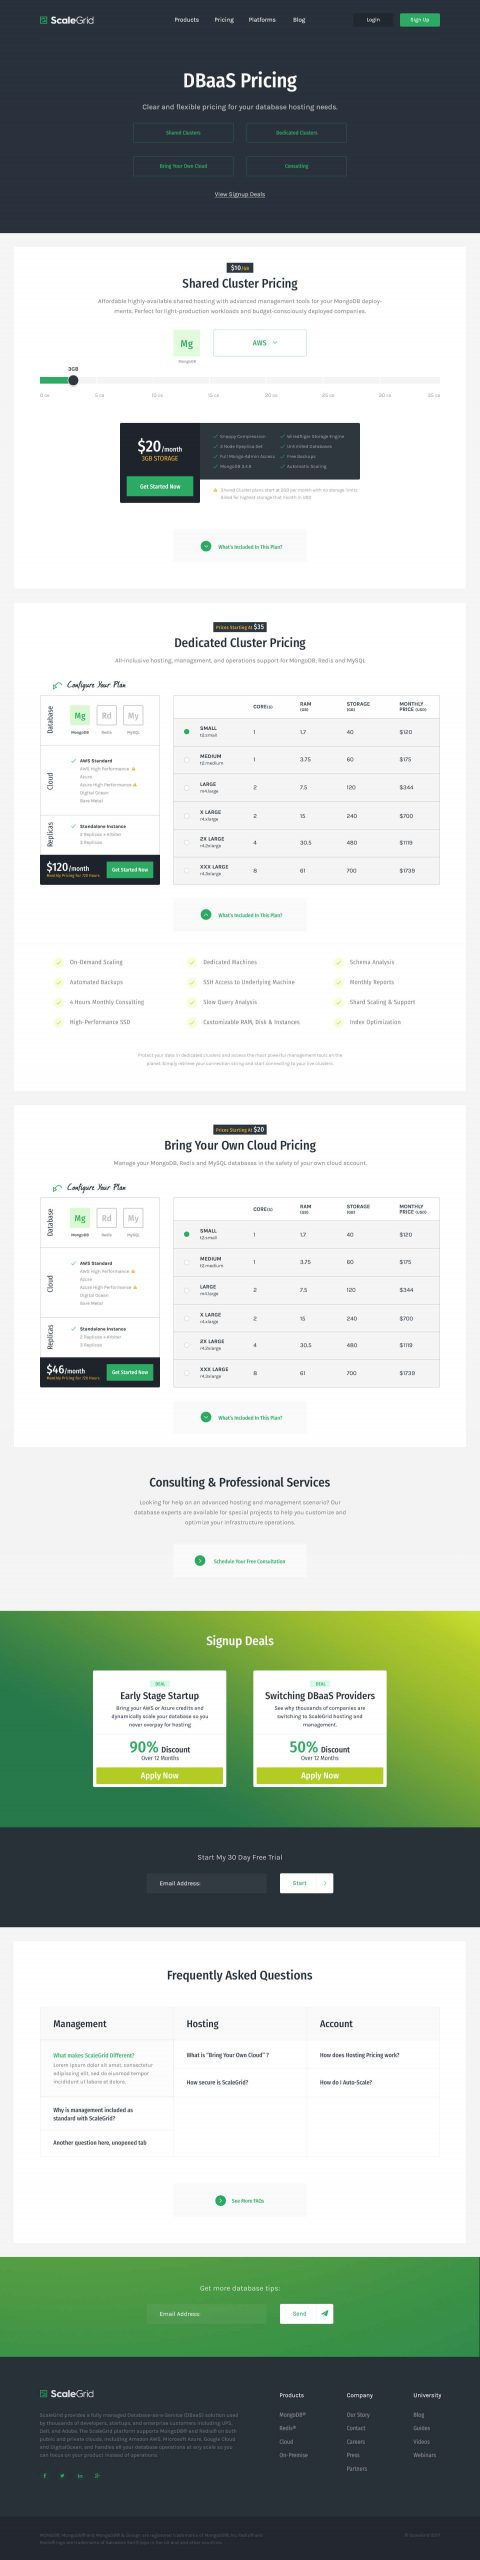 pricing_page-2